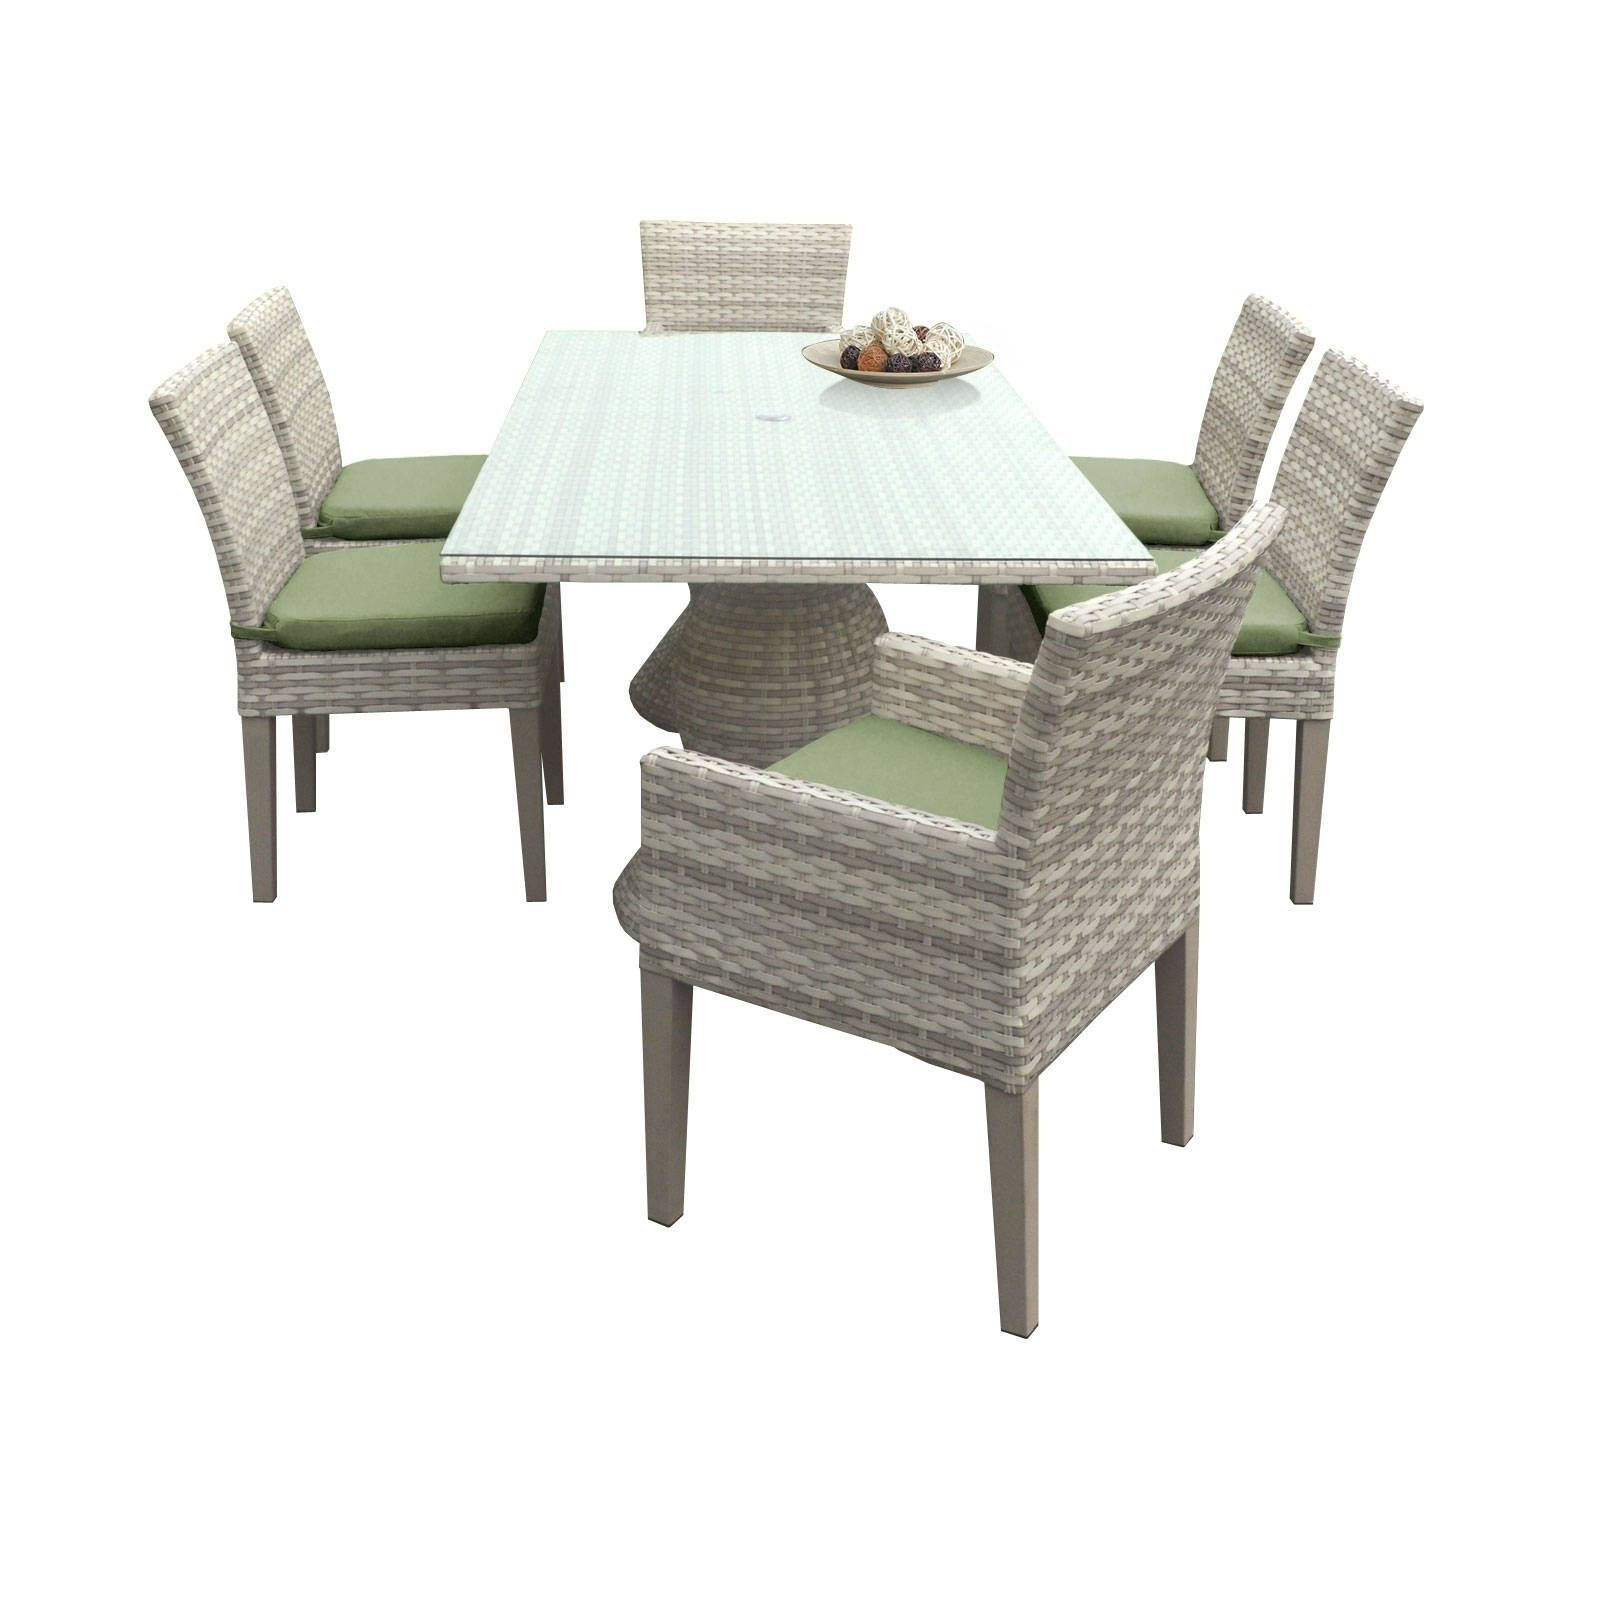 Catamaran Outdoor Patio Rectangular Wicker Dining Table With 4 Side Chairs And 2 Arm Crimson Grey Size 7 Piece Sets Furniture Acrylic